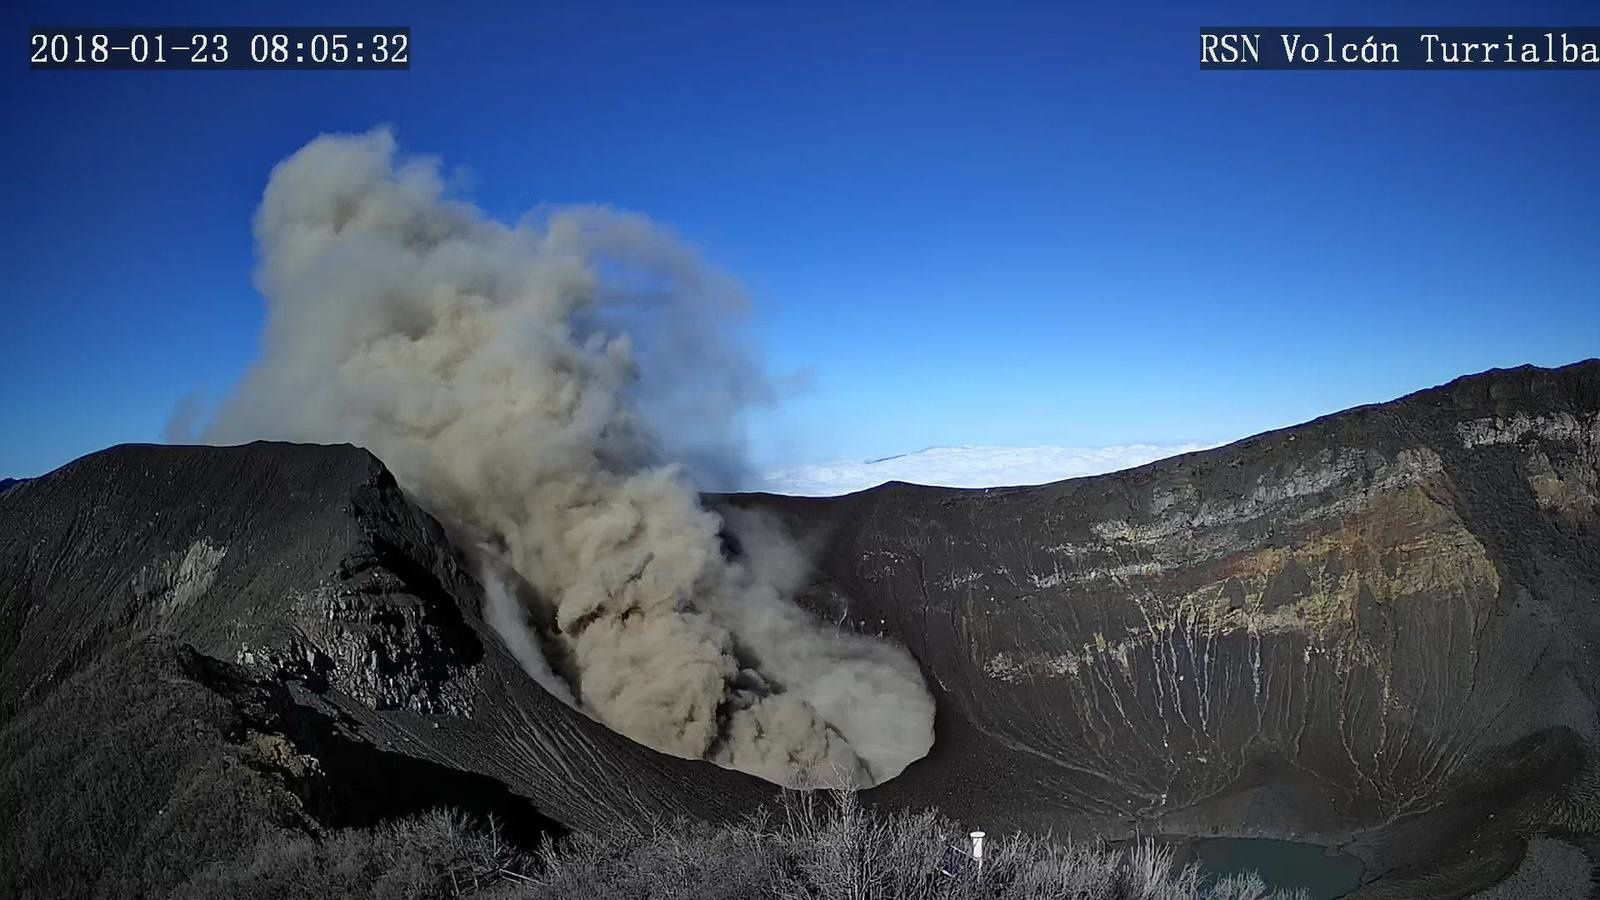 Turrialba - passive emission of ashes on 23.01.2018 / 8:05 - RSN webcam